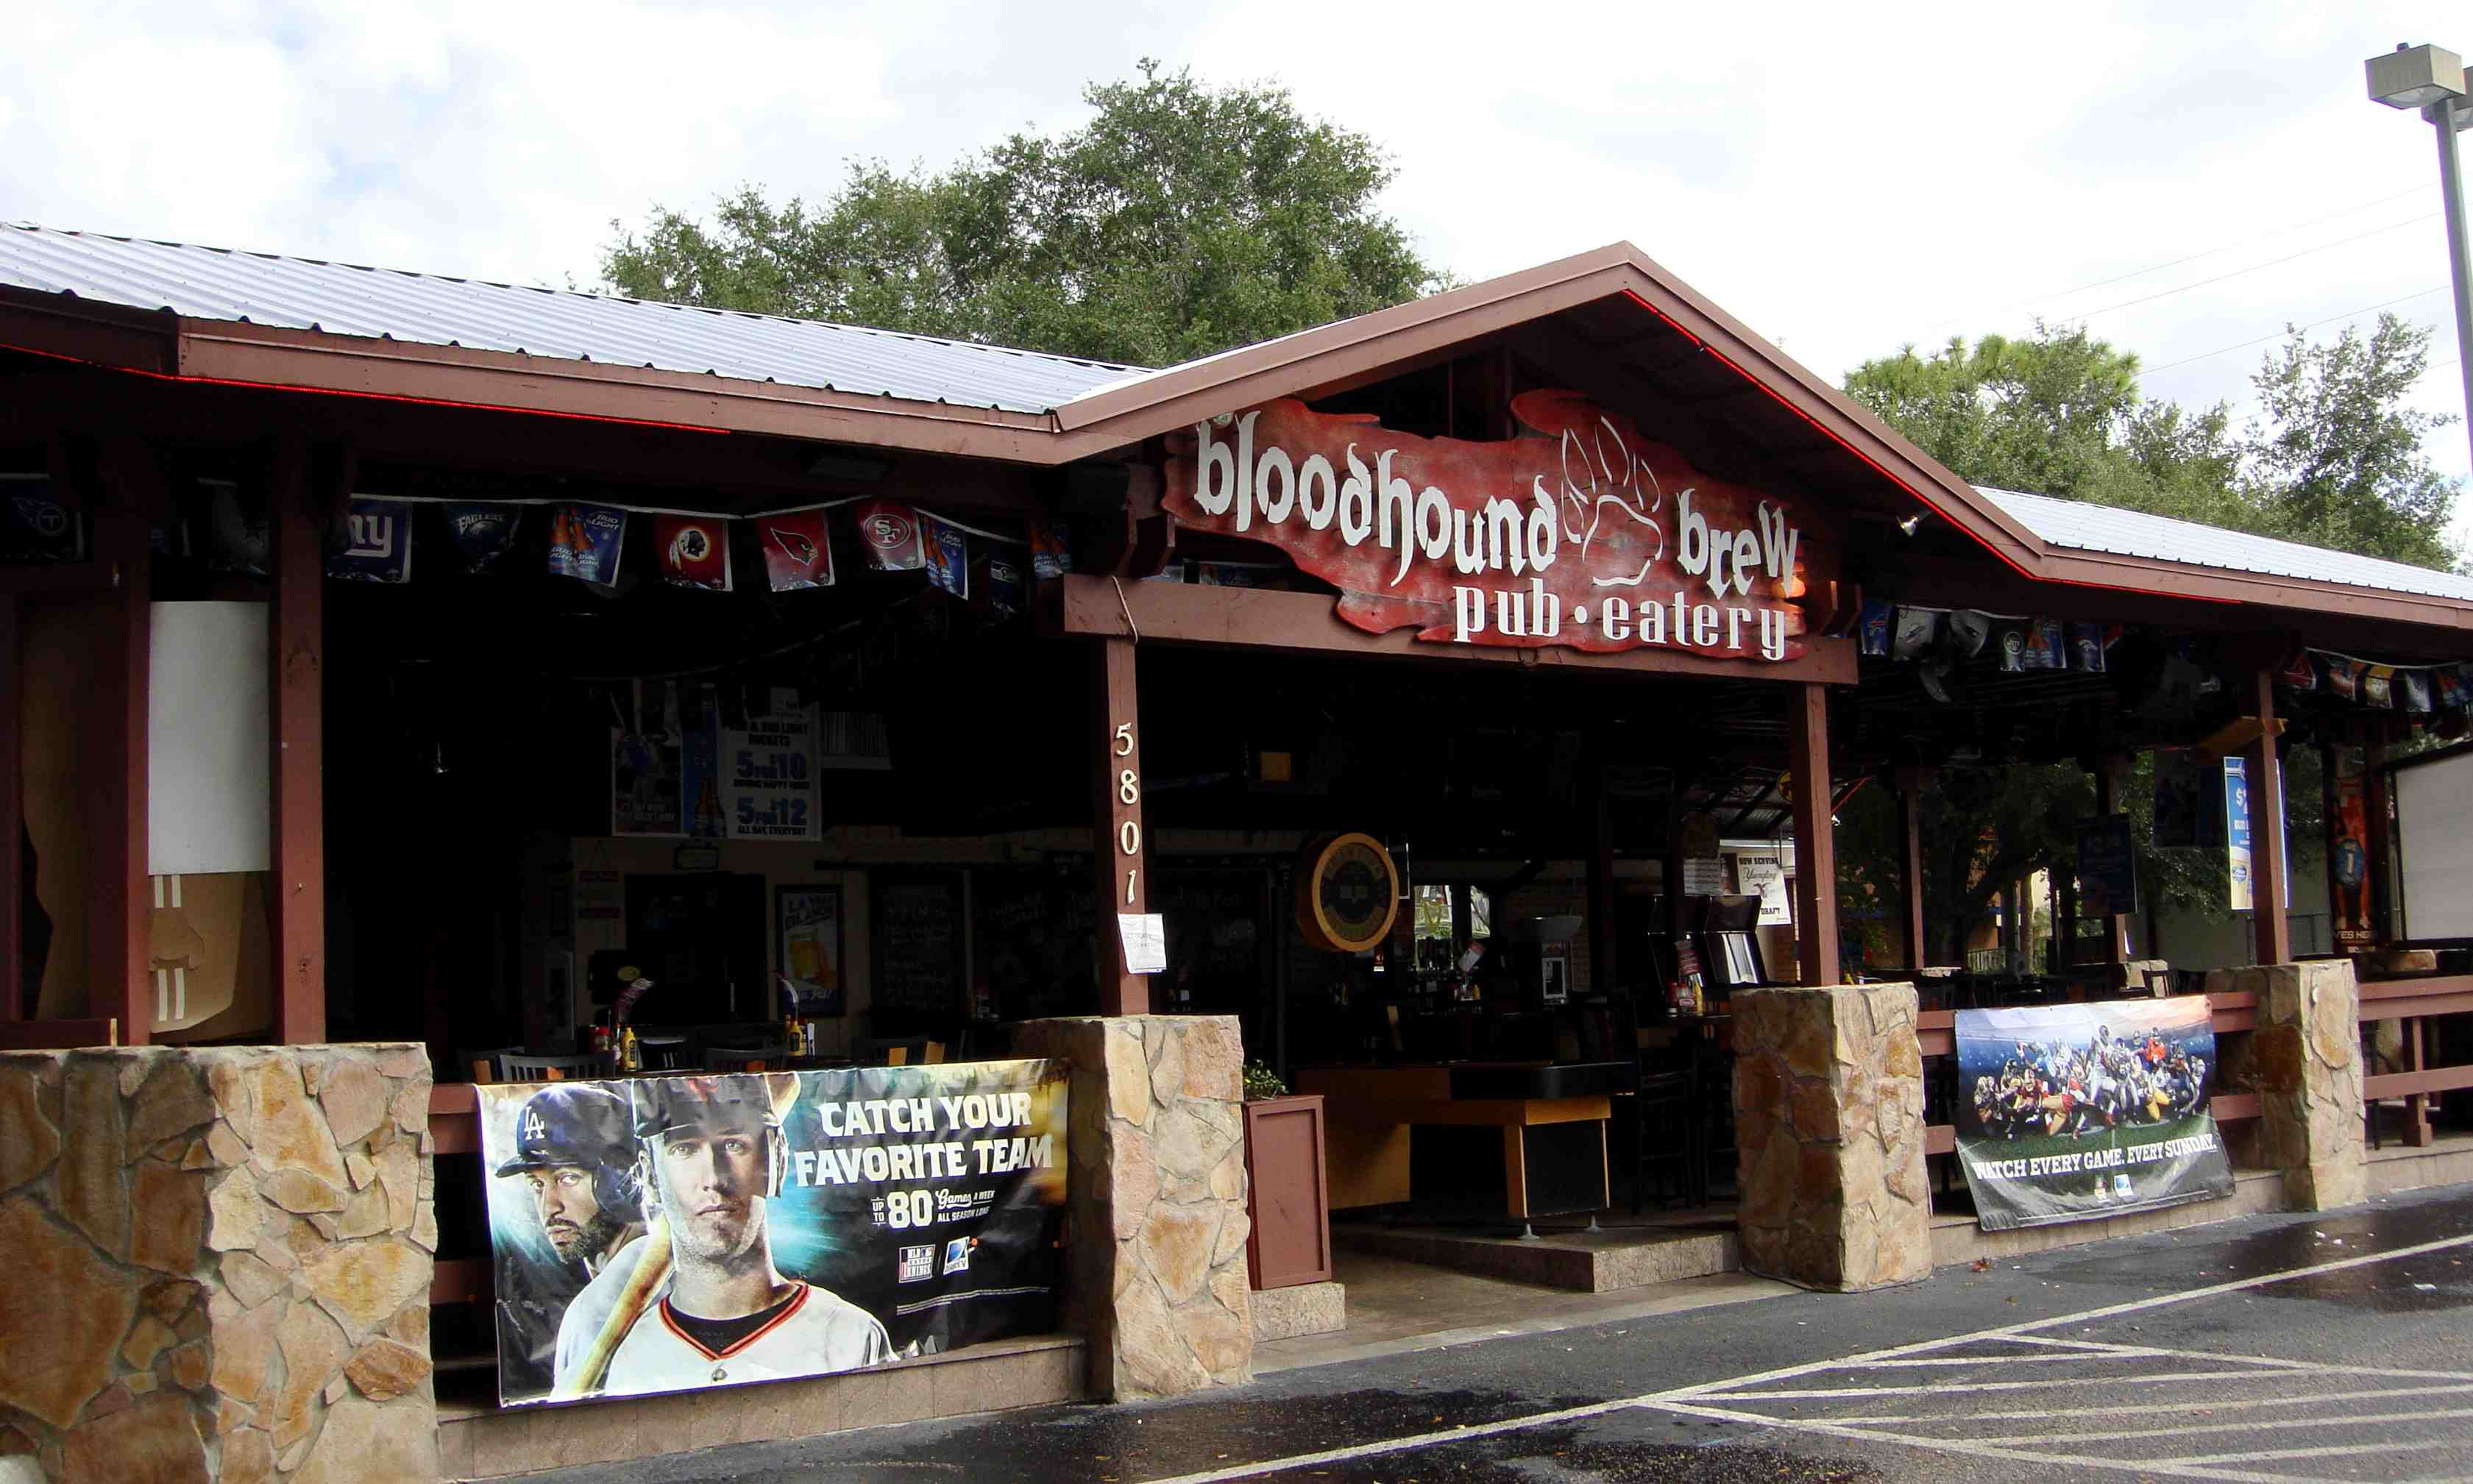 Bloodhound Brew Pub & Eatery | Today's Orlando